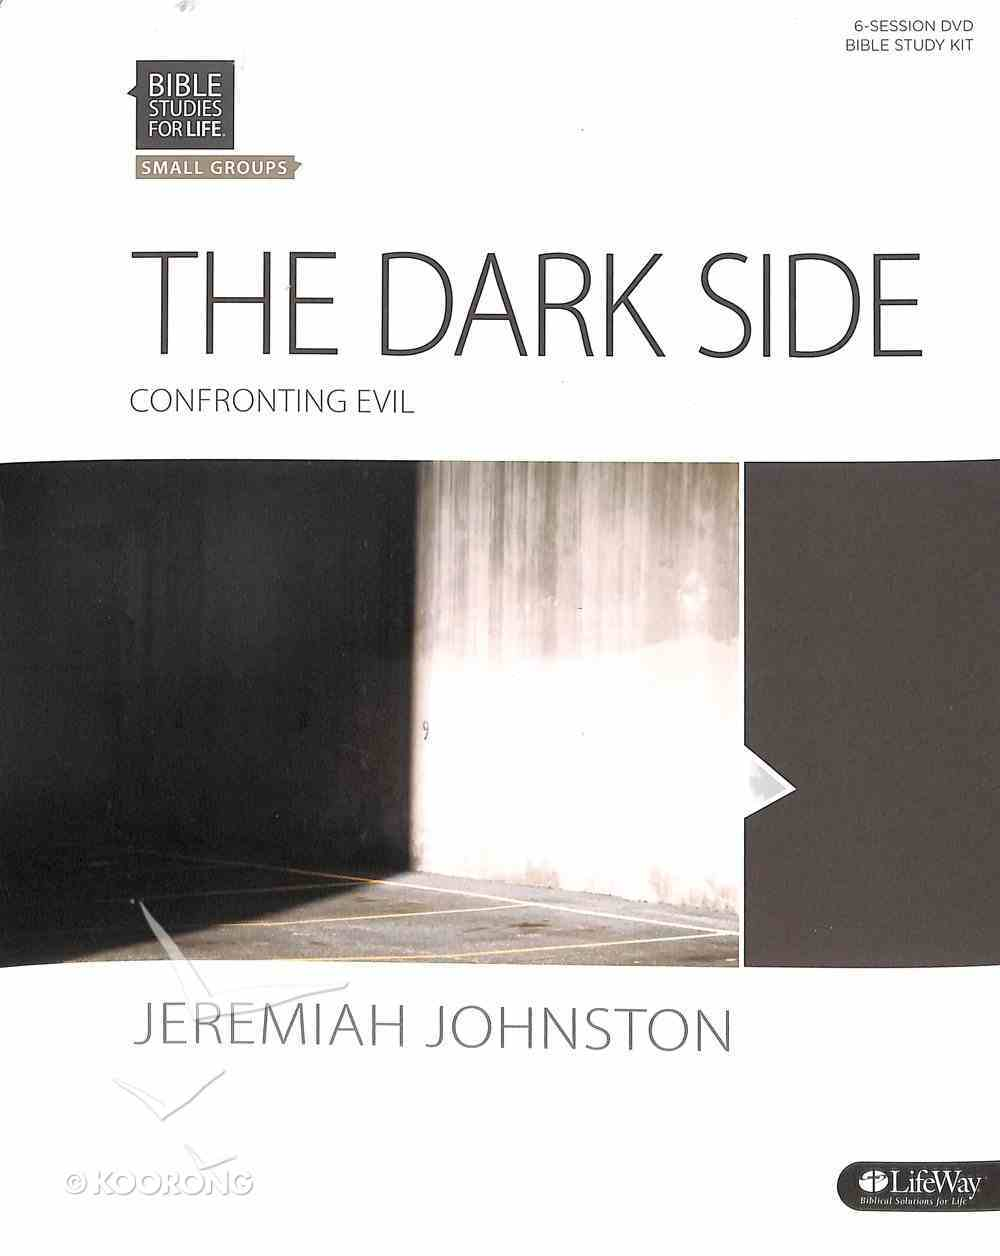 Dark Side, the Confronting Evil - Includes Bible Study Book, DVD, Power Point Slides, Leader Guide Etc. (Leader Kit) (Bible Studies For Life Series) Pack